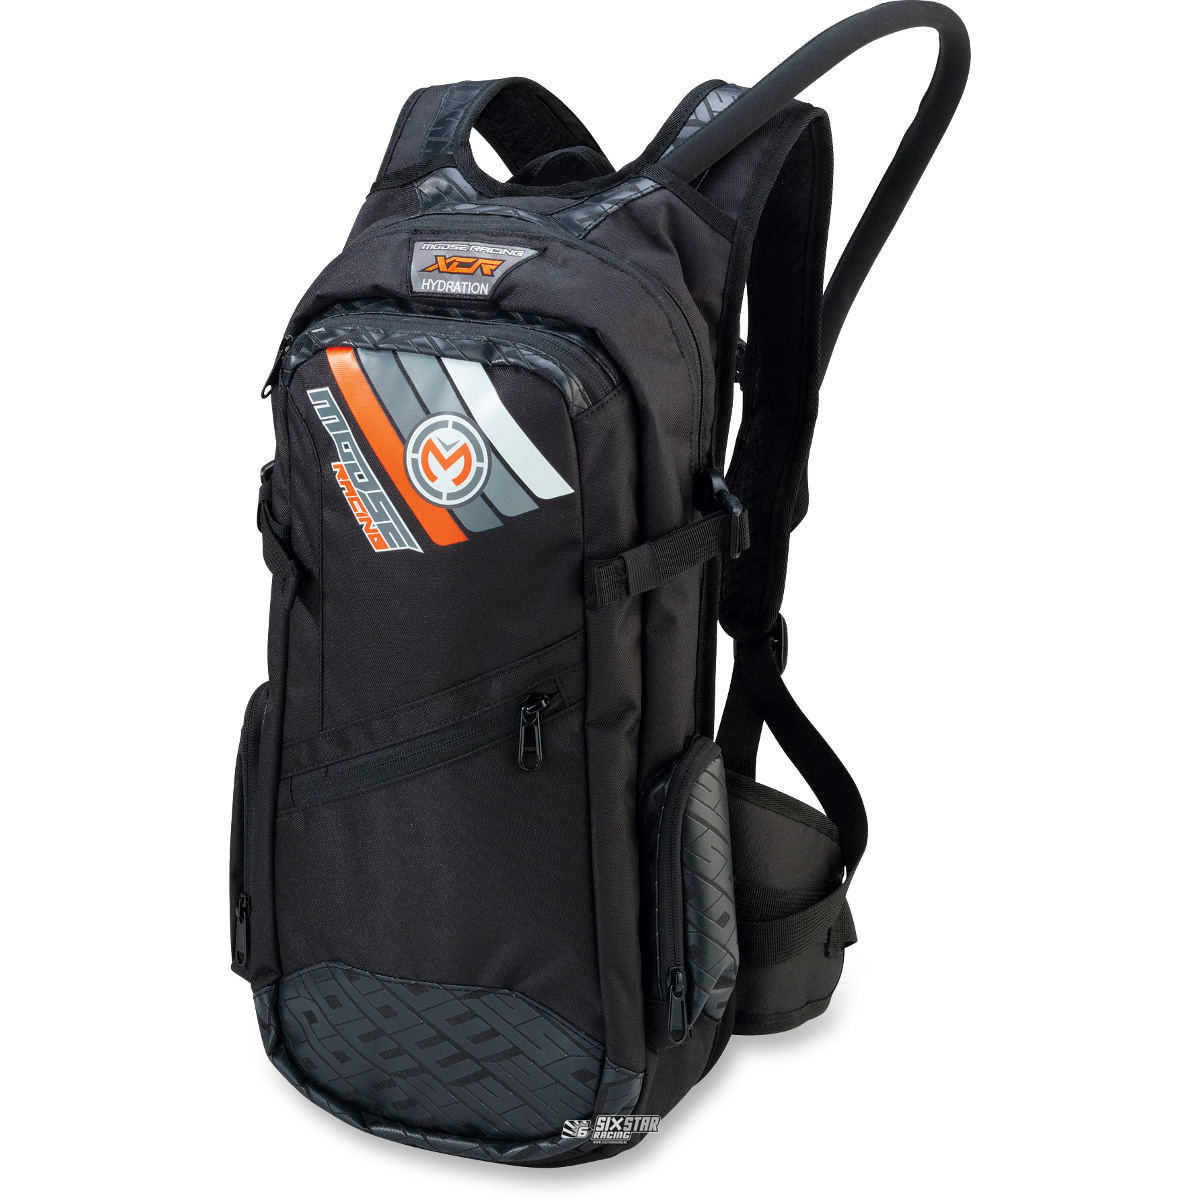 3519-0049 Moose Racing XCR Hydration Backpack camelbak sa à dos hydratation Rucksack mit Trinksystemvorrichtung